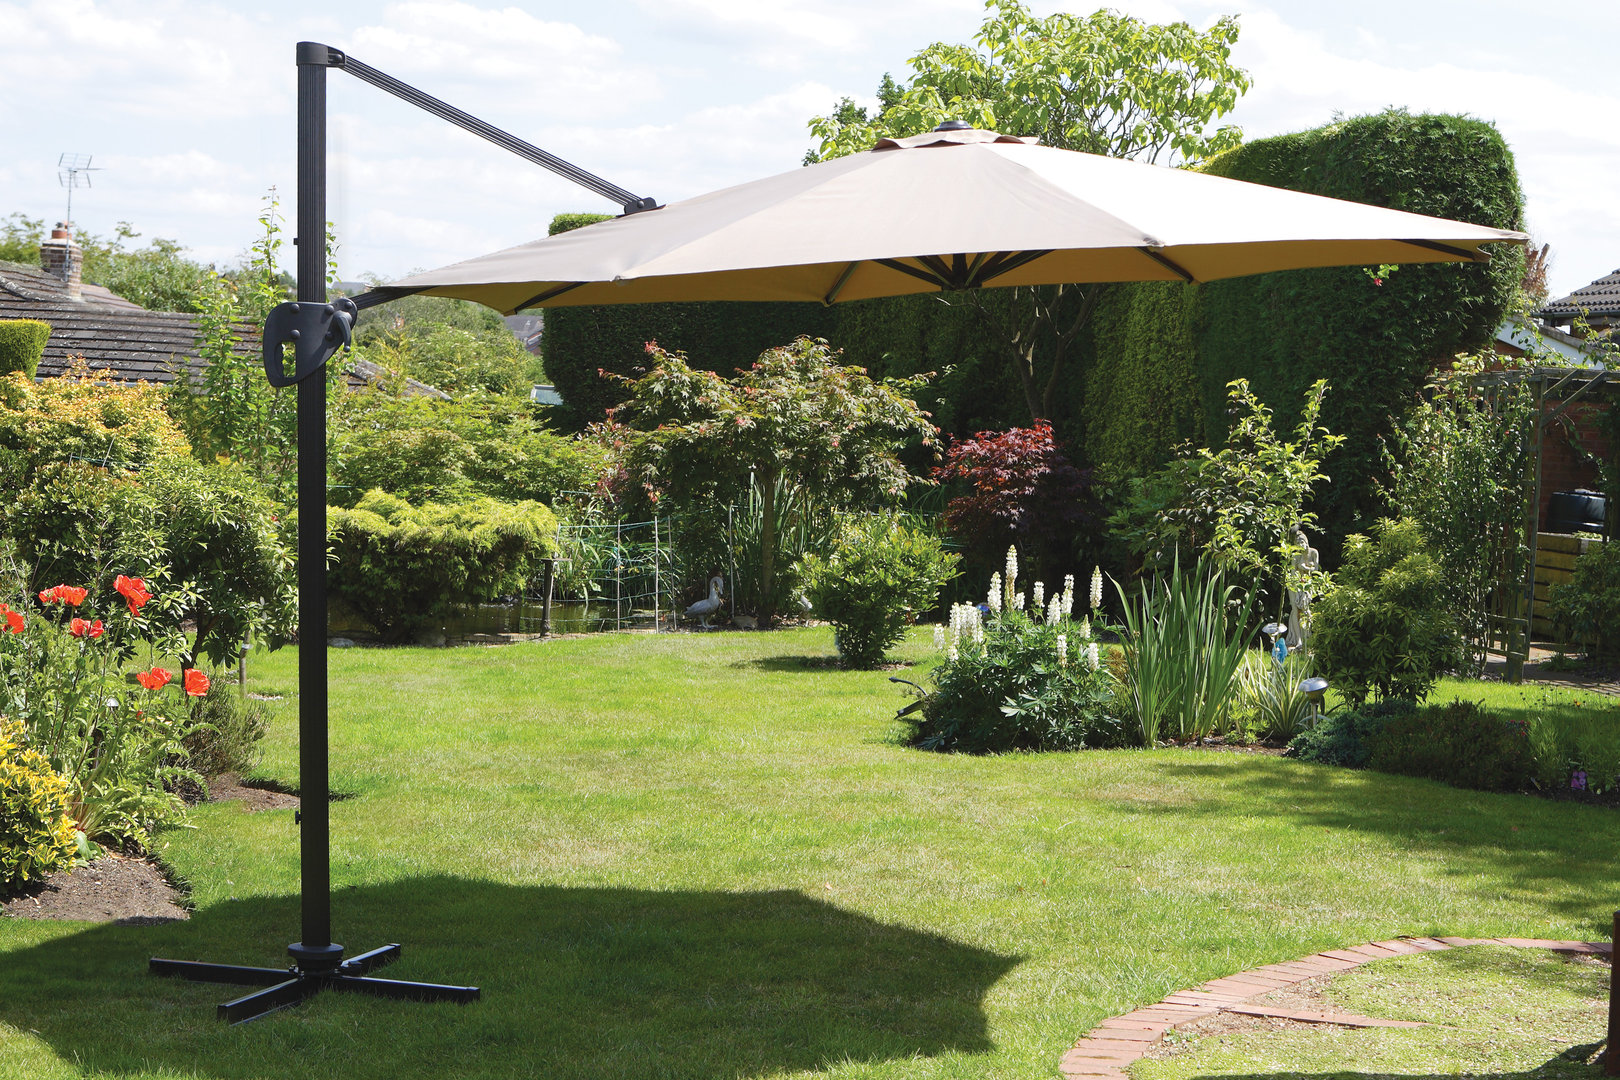 3 Piece Patio Set Under $100 | 10 Ft Offset Umbrella | Costco Offset Umbrella